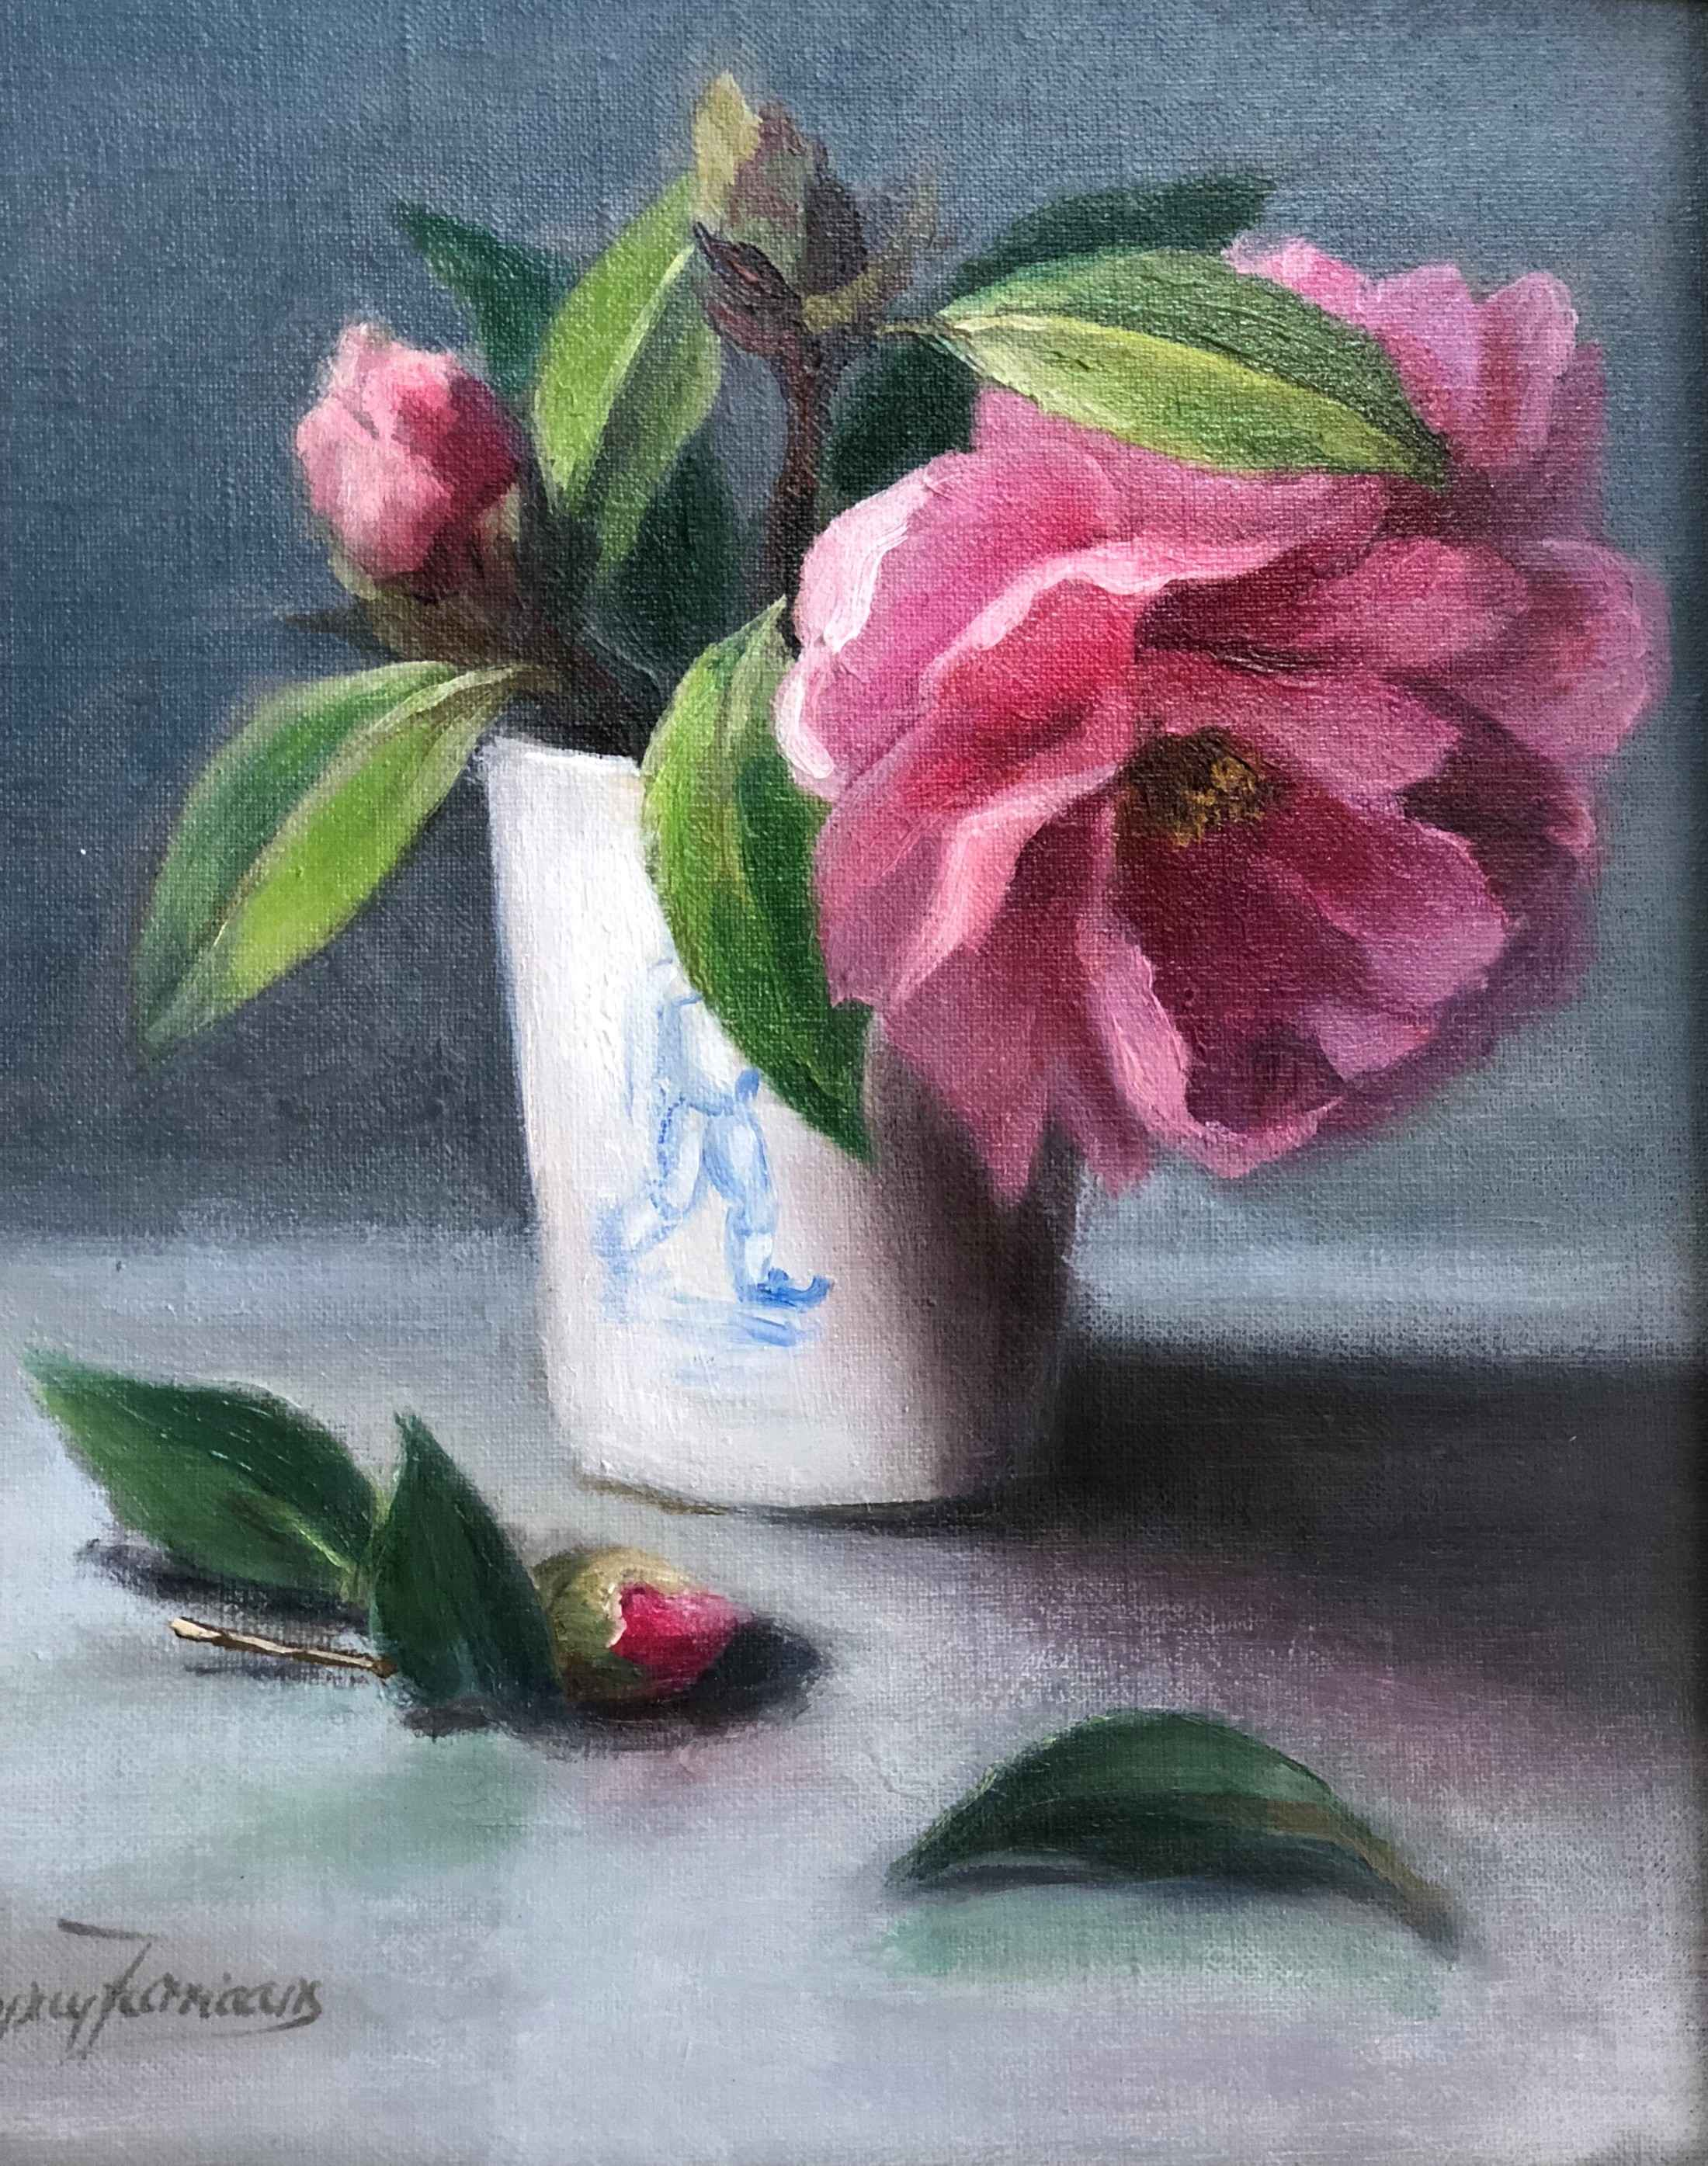 In The Pink Camelias by  Cary Jurriaans - Masterpiece Online